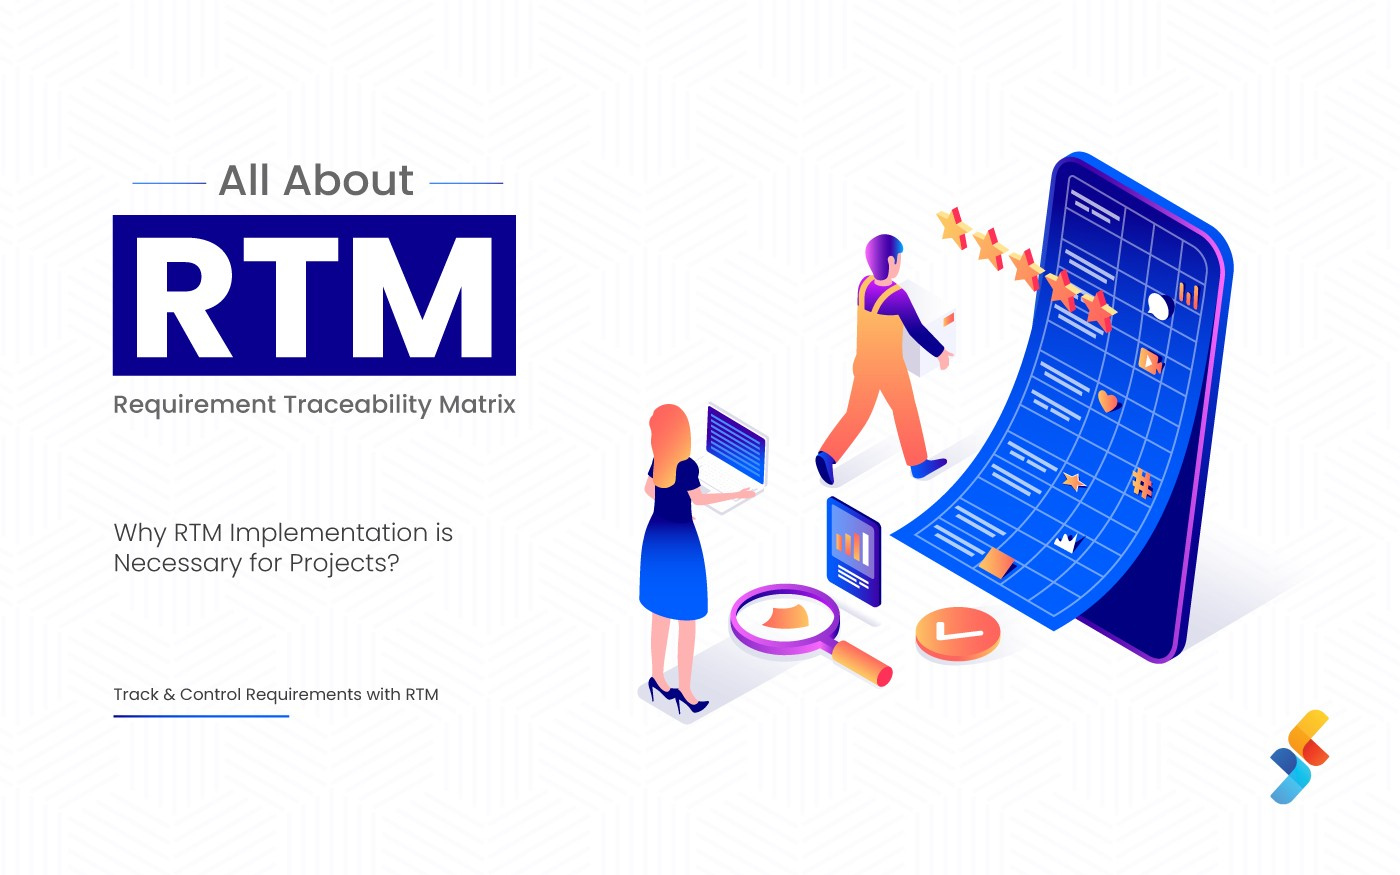 Traceability Matrix RTM